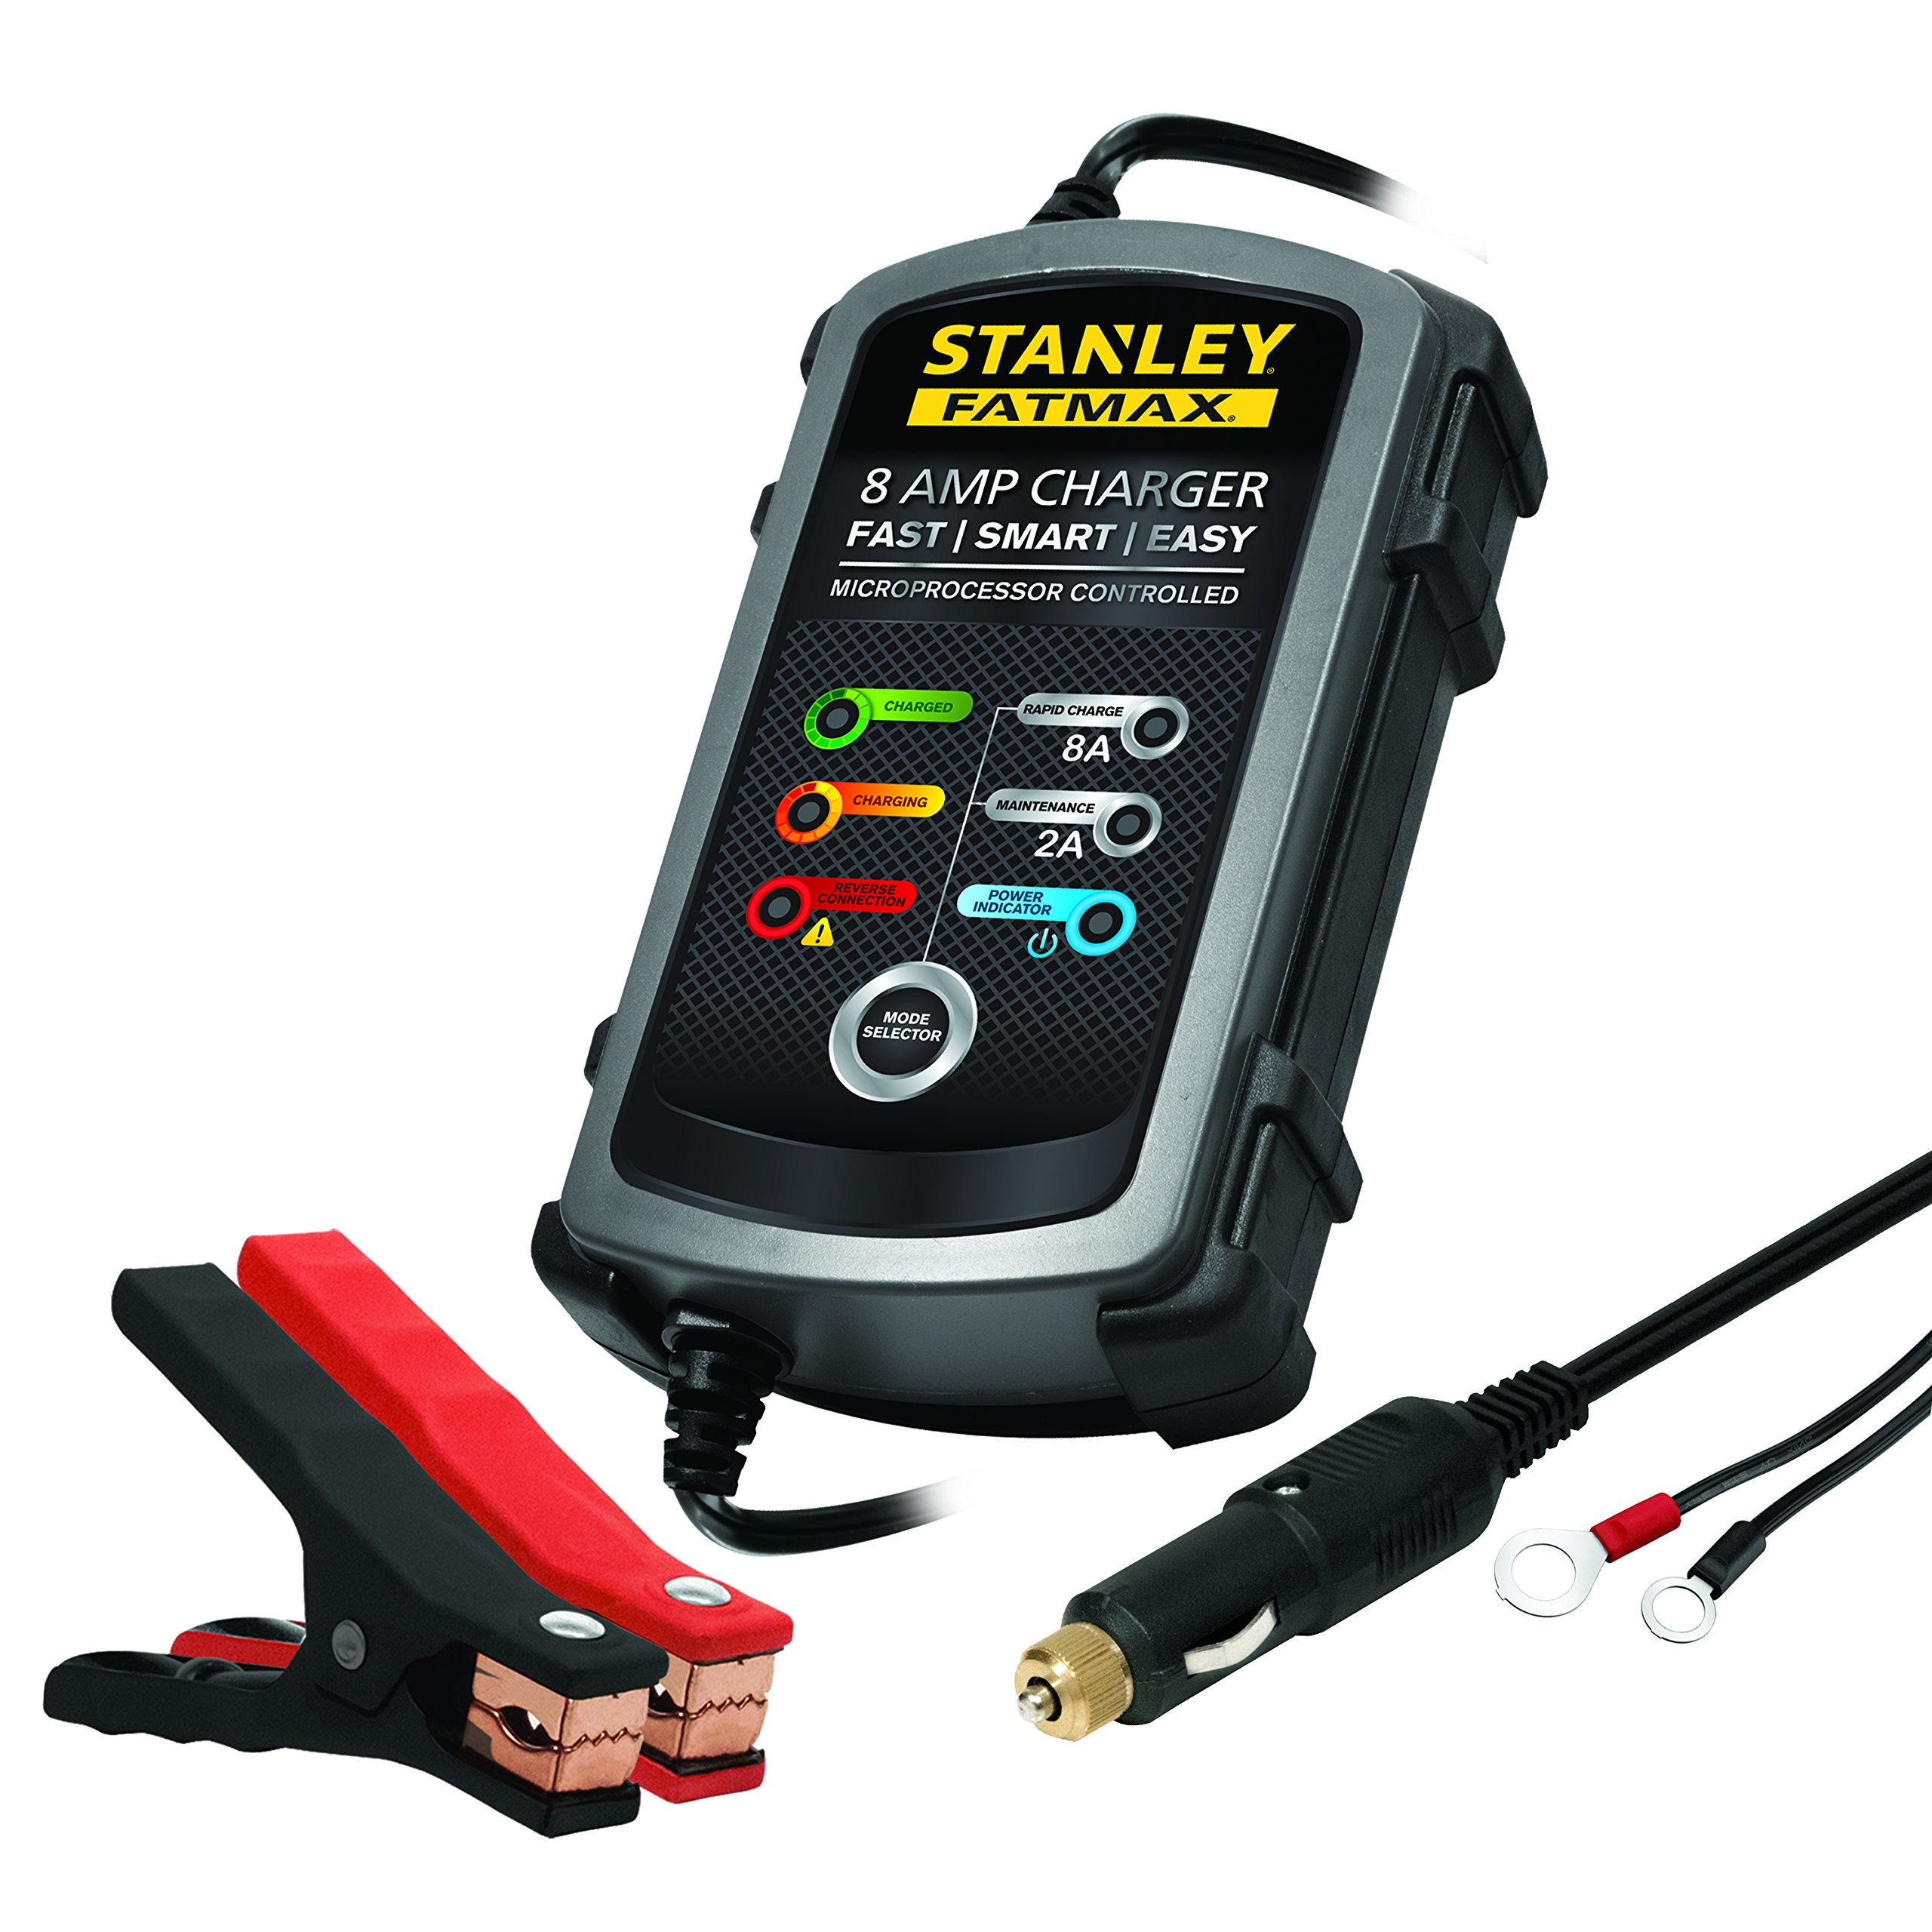 STANLEY FATMAX BC8S Fully Automatic 8A 12V Battery Charger/Maintainer with Cable Clamps